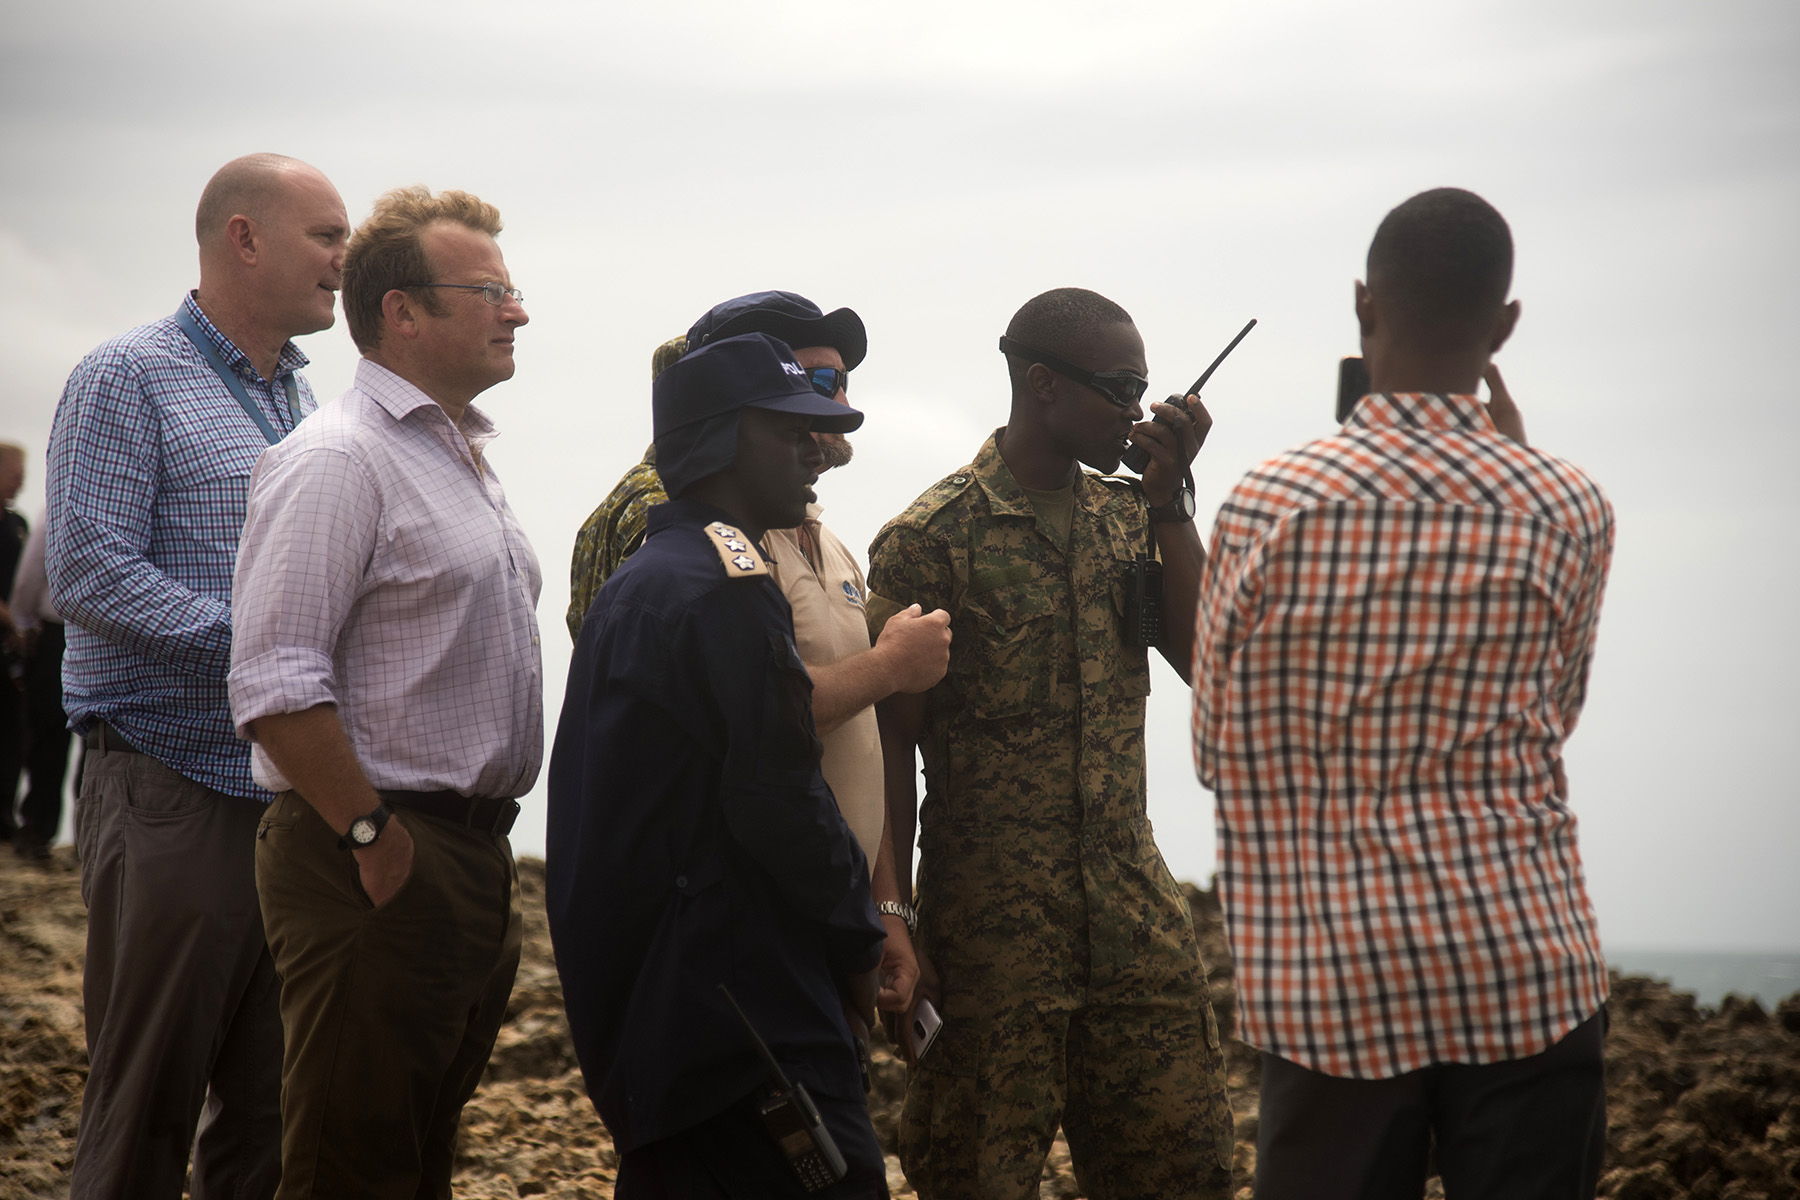 MOGADISHU, Somalia- Representatives from United Nations Office on Drugs and Crime gather with exercise leads to conduct a Somali Police Force Maritime Police Unit exercise to demonstrate capabilities with its two new vessels, Aug. 25, 2016, in Mogadishu, Somalia. The boat teams demonstrated interdiction operations to representatives from approximately seven countries involved in improving security and stability in Somalia, by capturing a mock hostile boat with exercise participants. (U.S. Air Force photo by Staff Sgt. Tiffany DeNault)